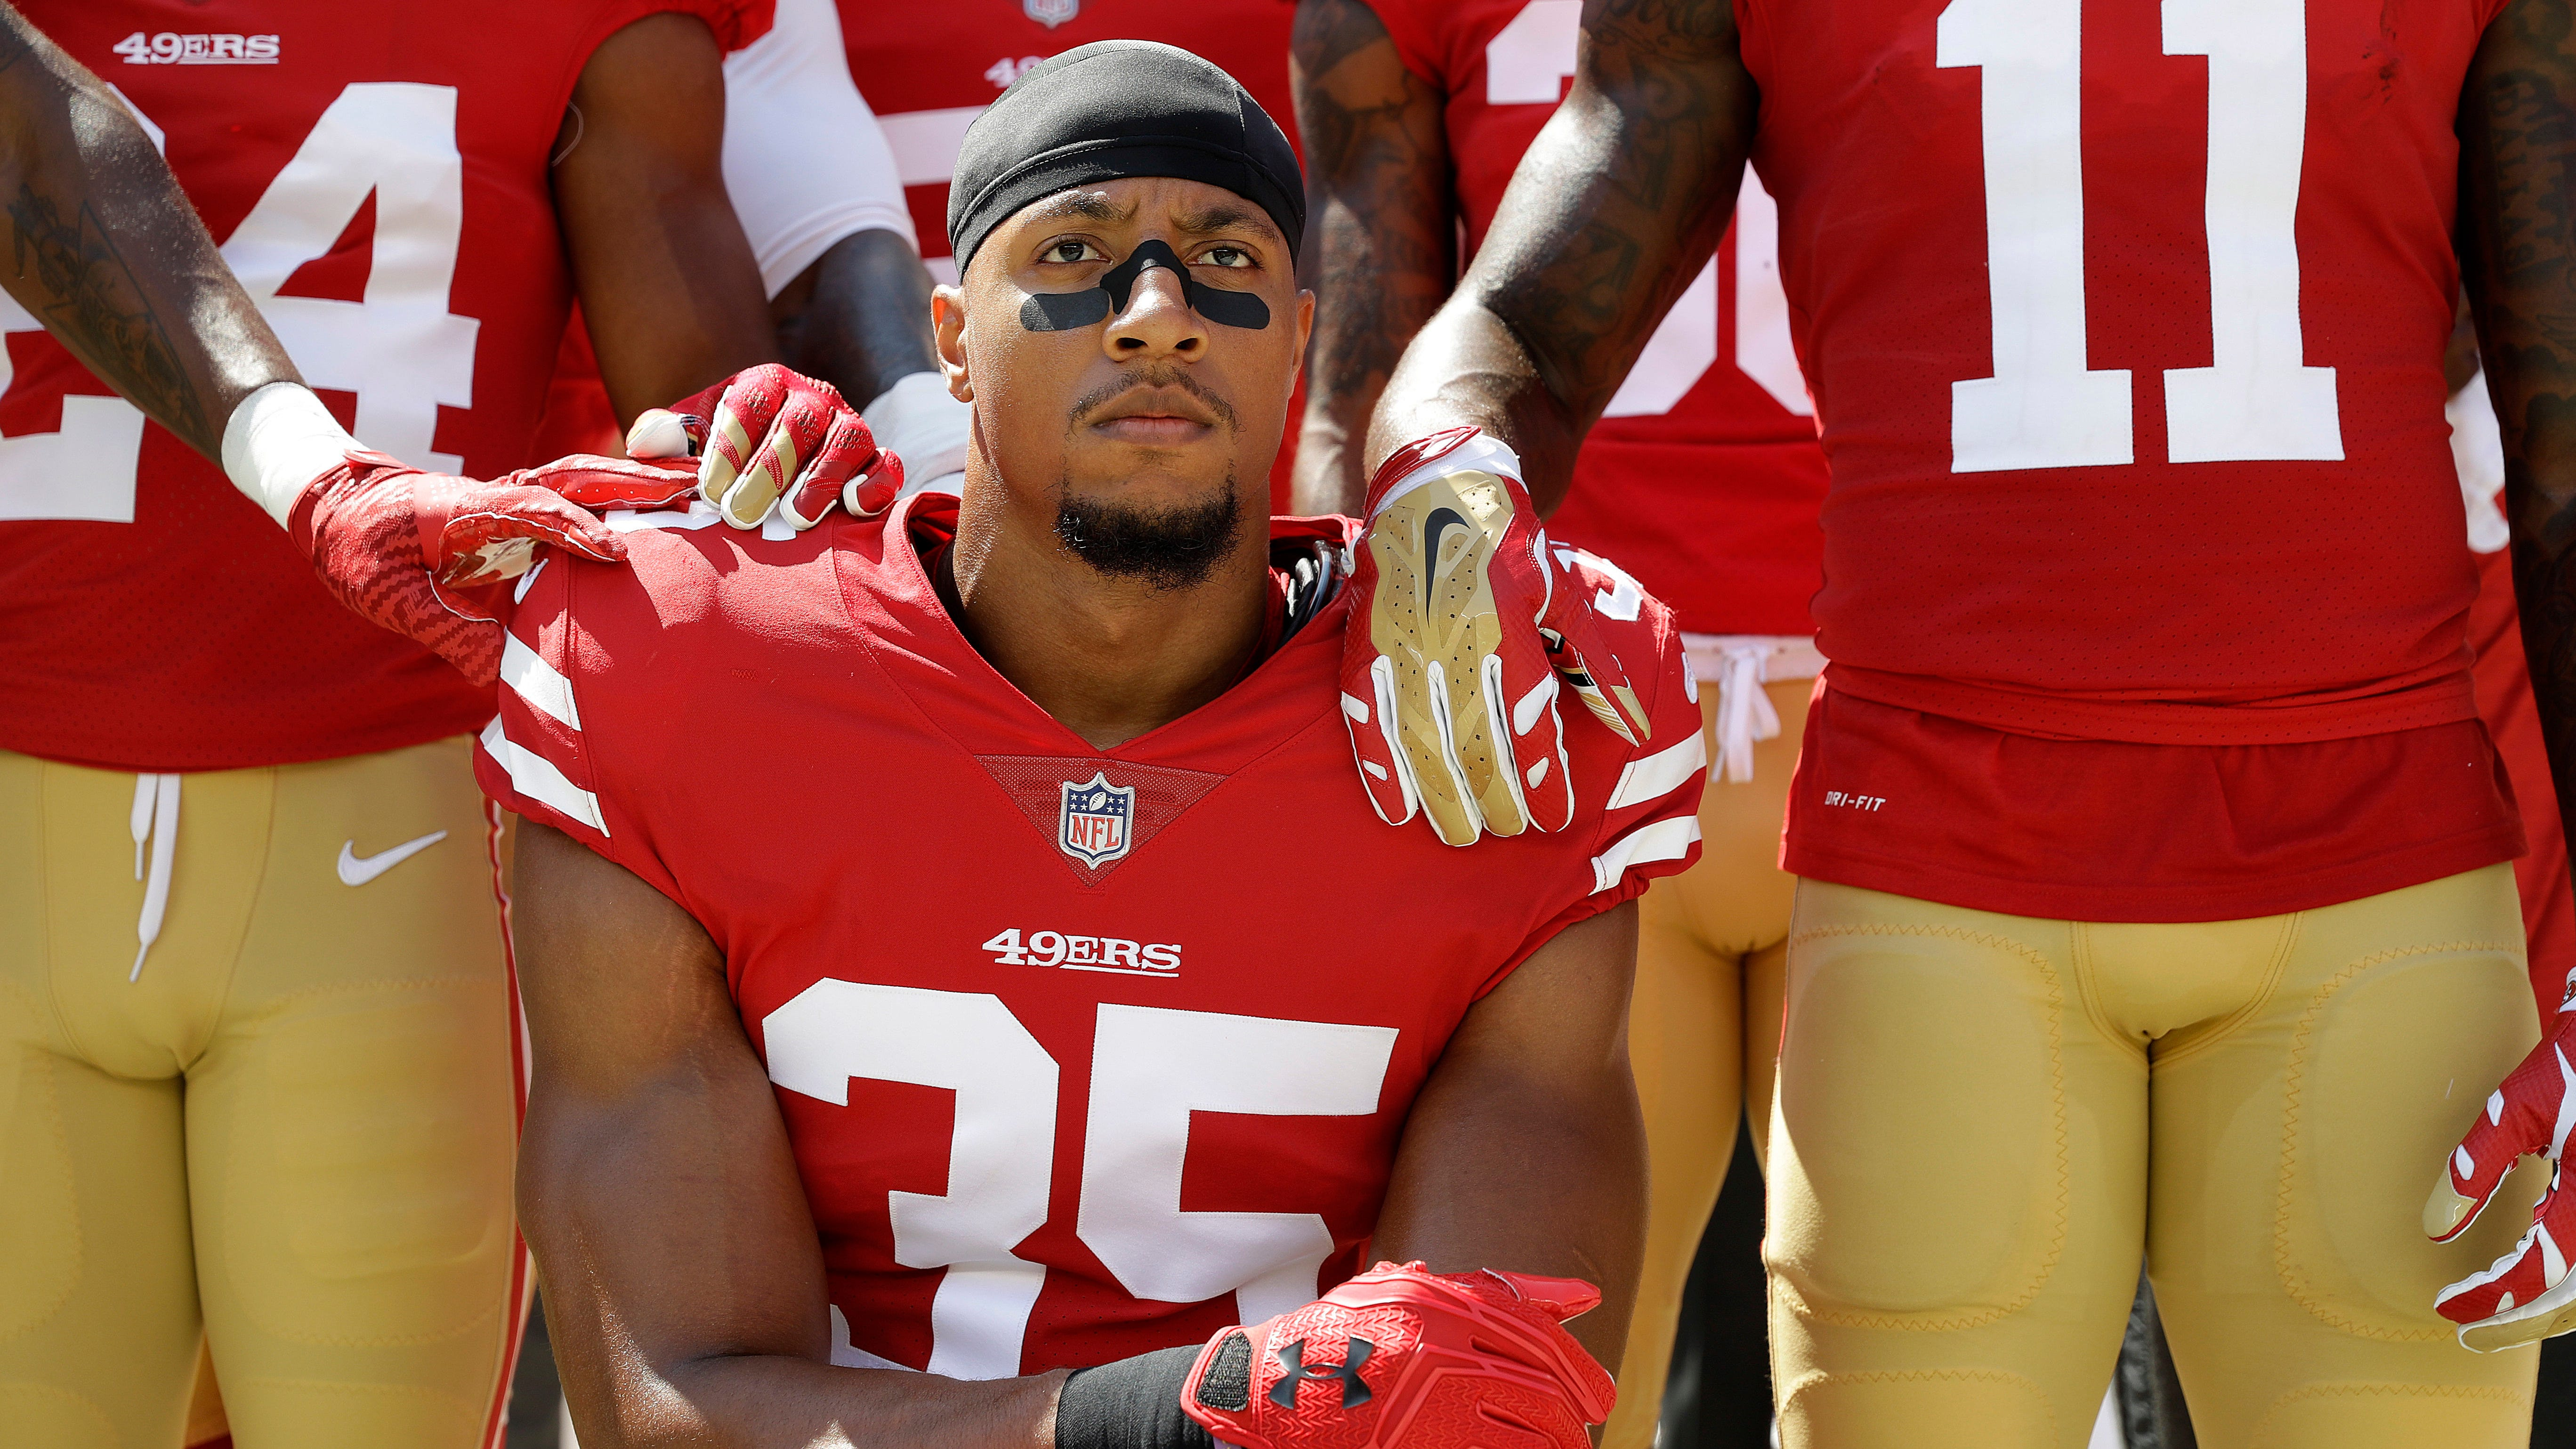 Carolina Panthers Eric Reid Weighs Whether To Protest During Anthem